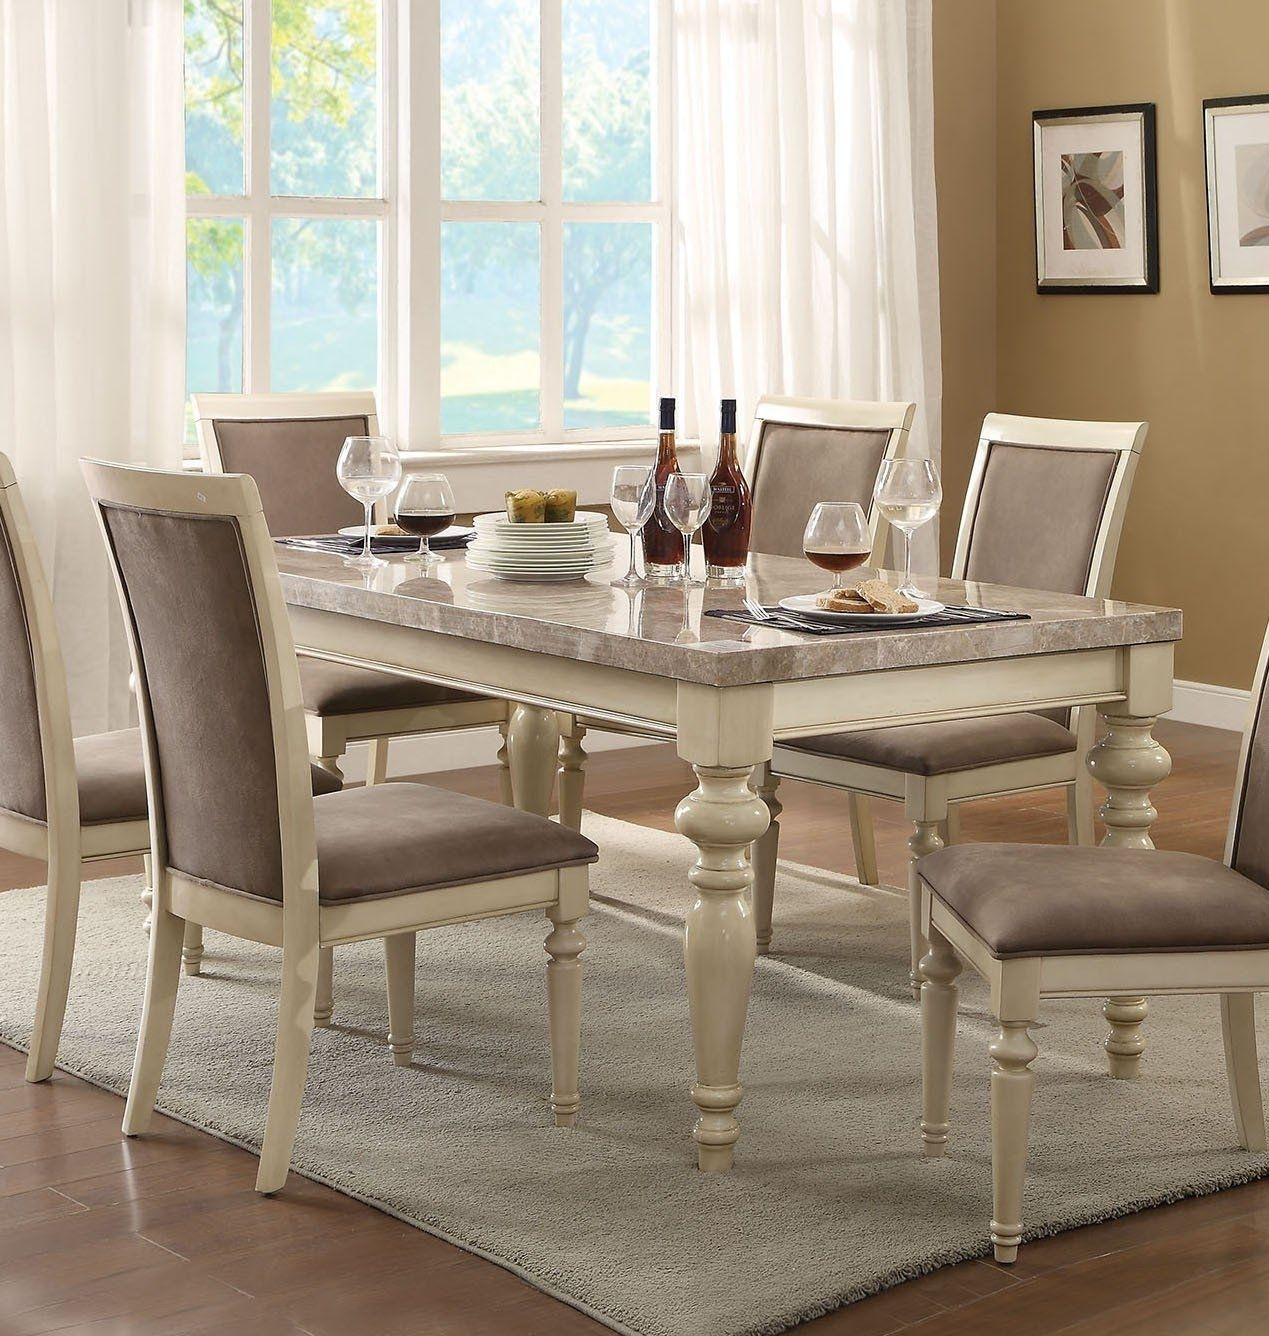 Acme 71705 Ryder Antique White Marble Top Dining Table | Home Within Most Current Caira Black 5 Piece Round Dining Sets With Diamond Back Side Chairs (View 11 of 20)